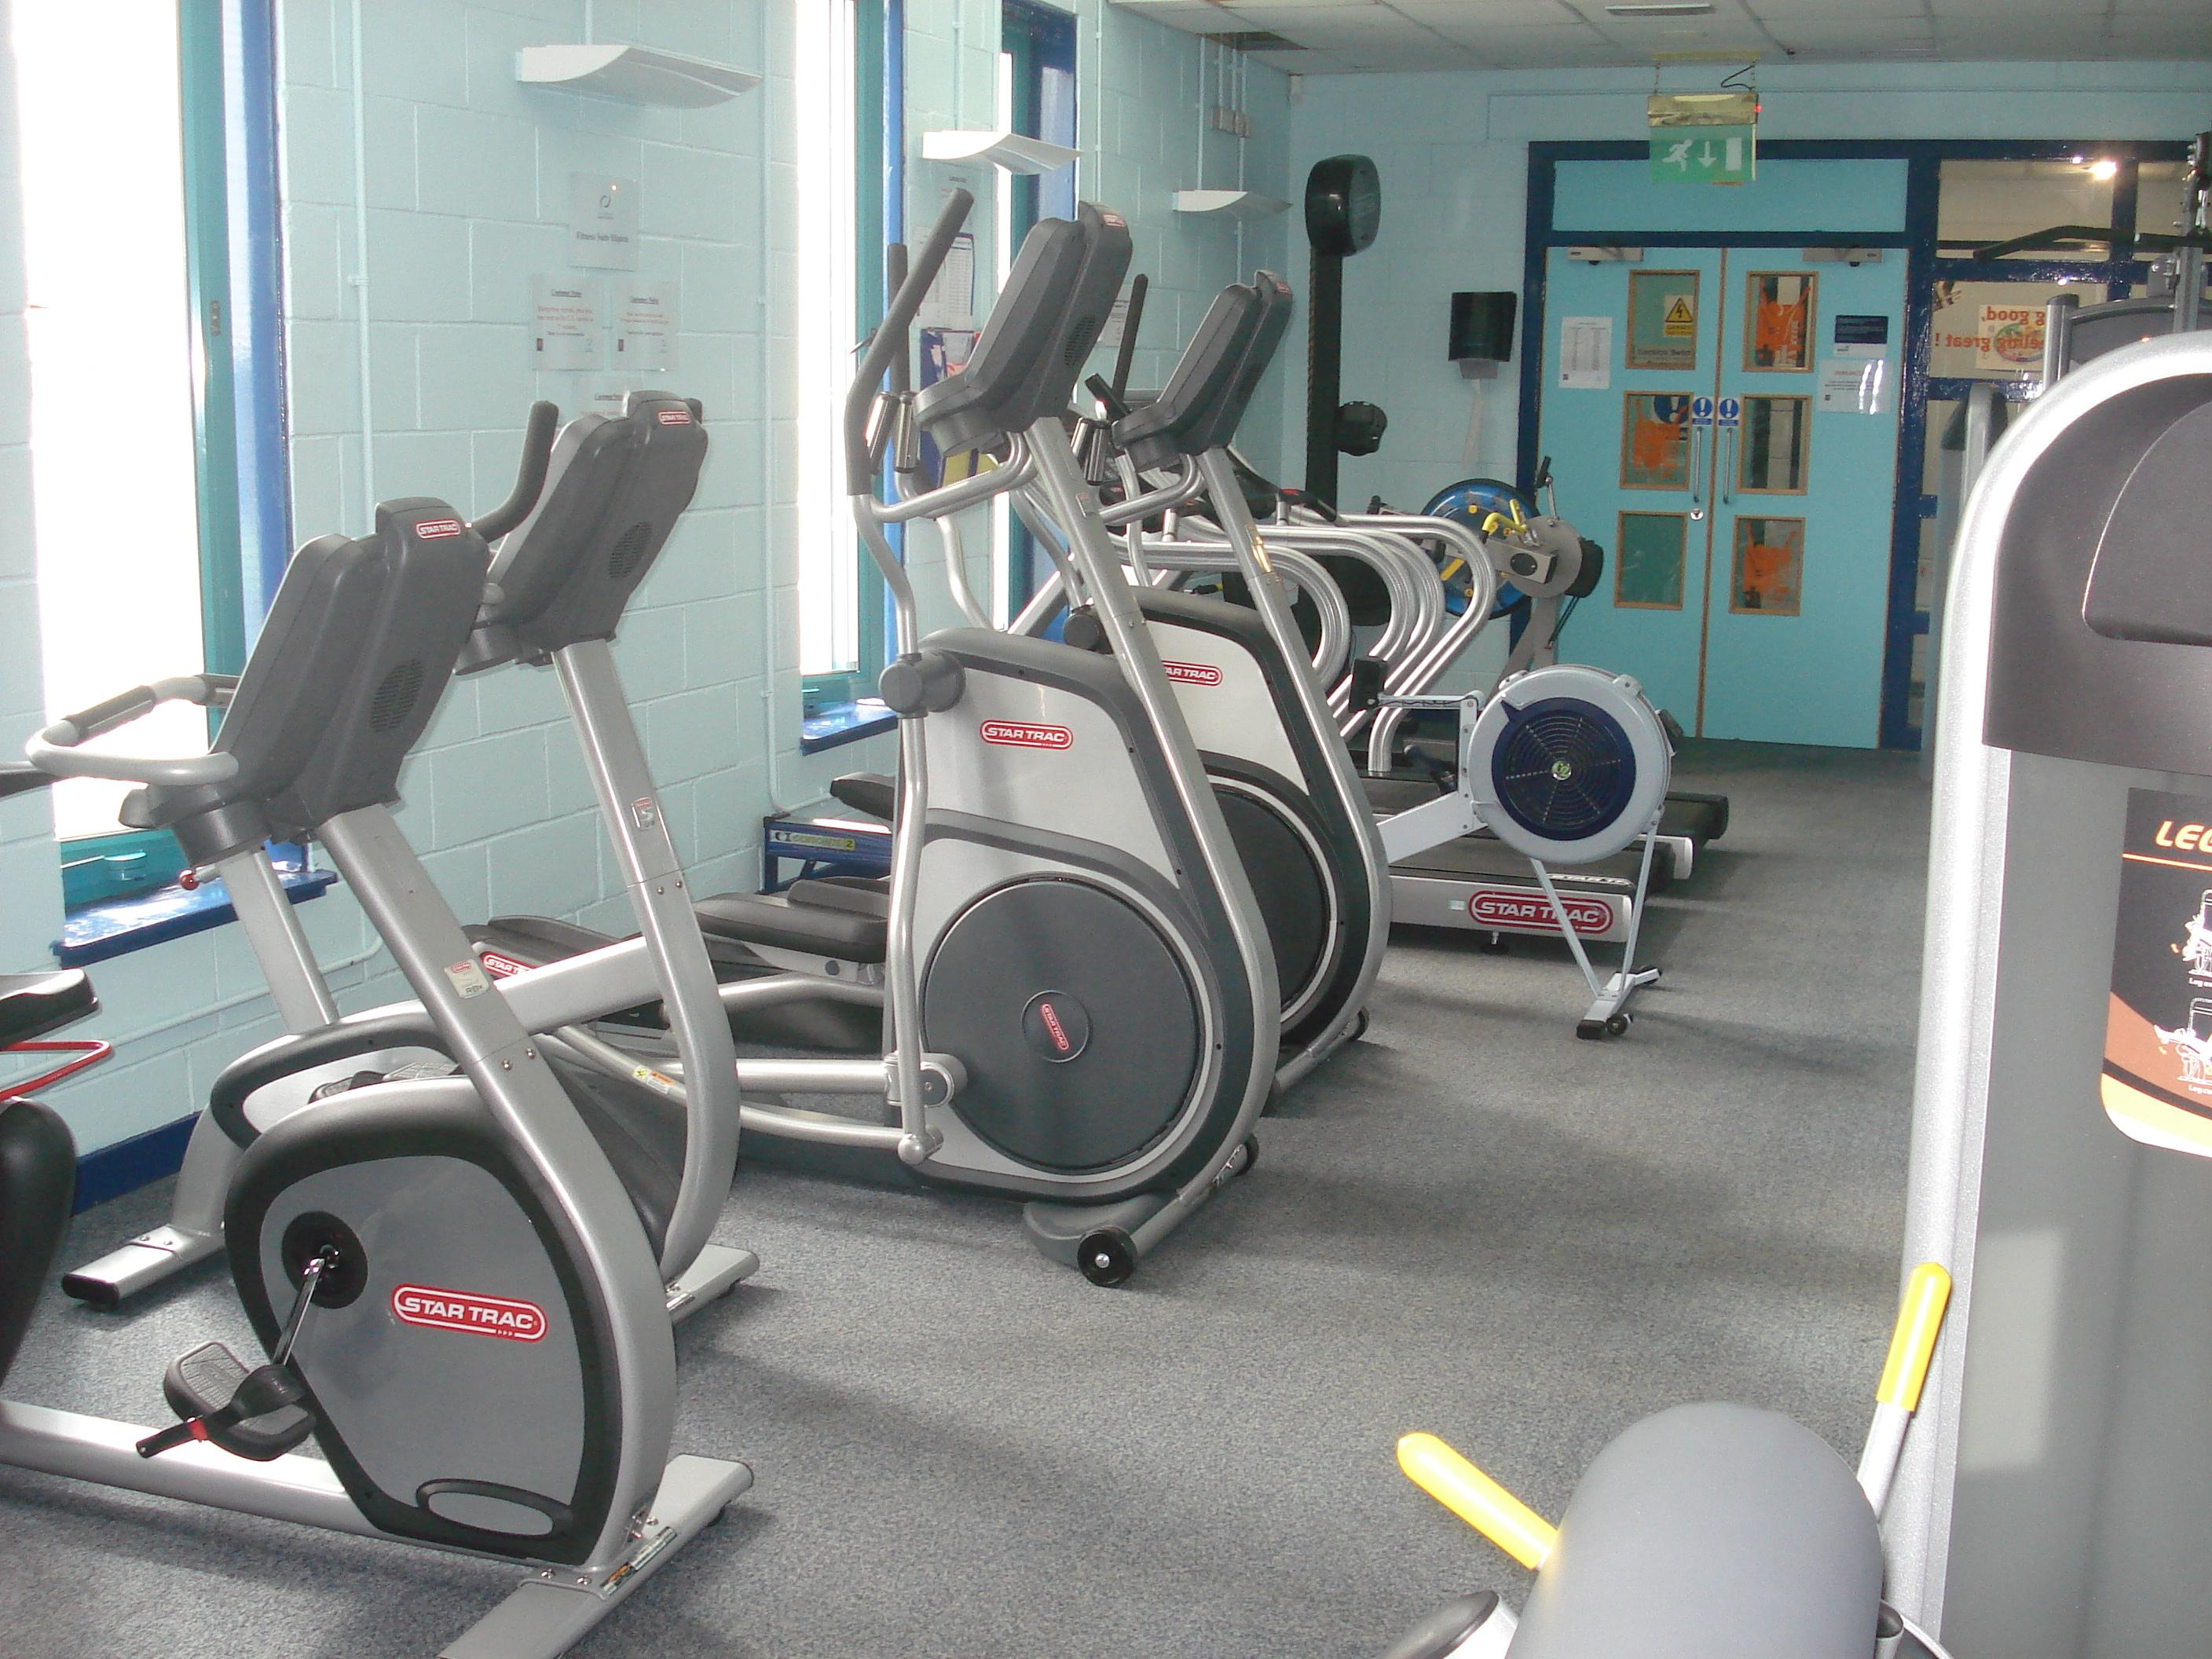 new gym equipment at Forth community centre